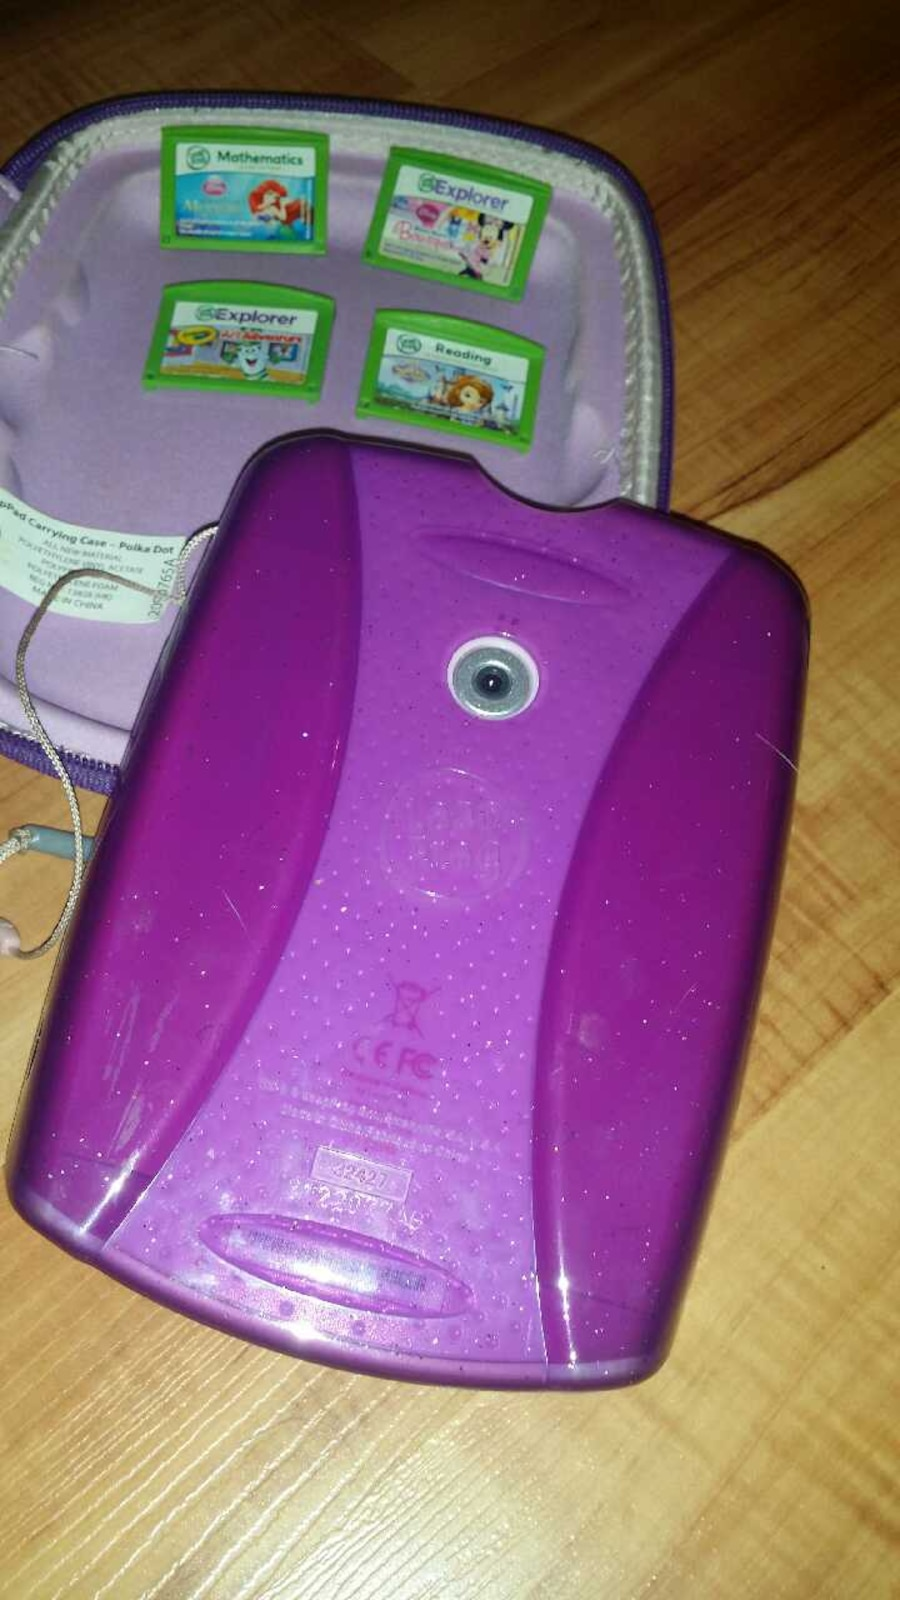 Buy LeapFrog LeapPad2 Gel Skin, Flowers (Works with all LeapPad2 and LeapPad1 Tablets): Electronic System Accessories - weziqaze.ga FREE DELIVERY possible on eligible purchases.